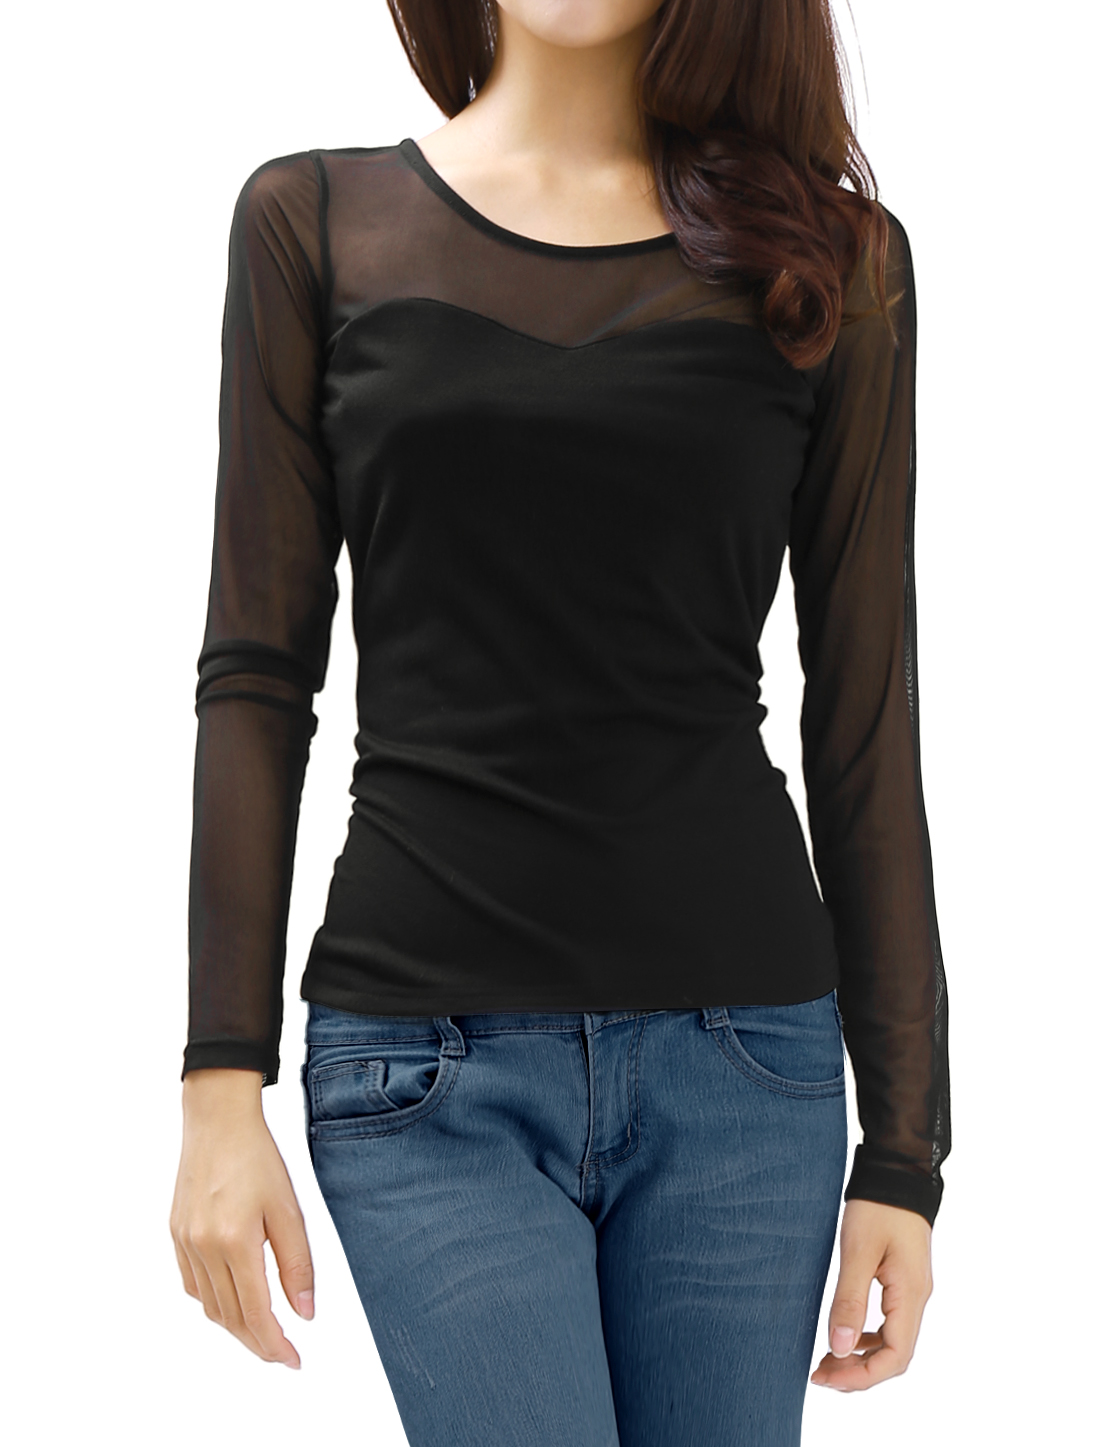 Black Sheer Long Sleeve Scoop Neck Shirt for Lady XS